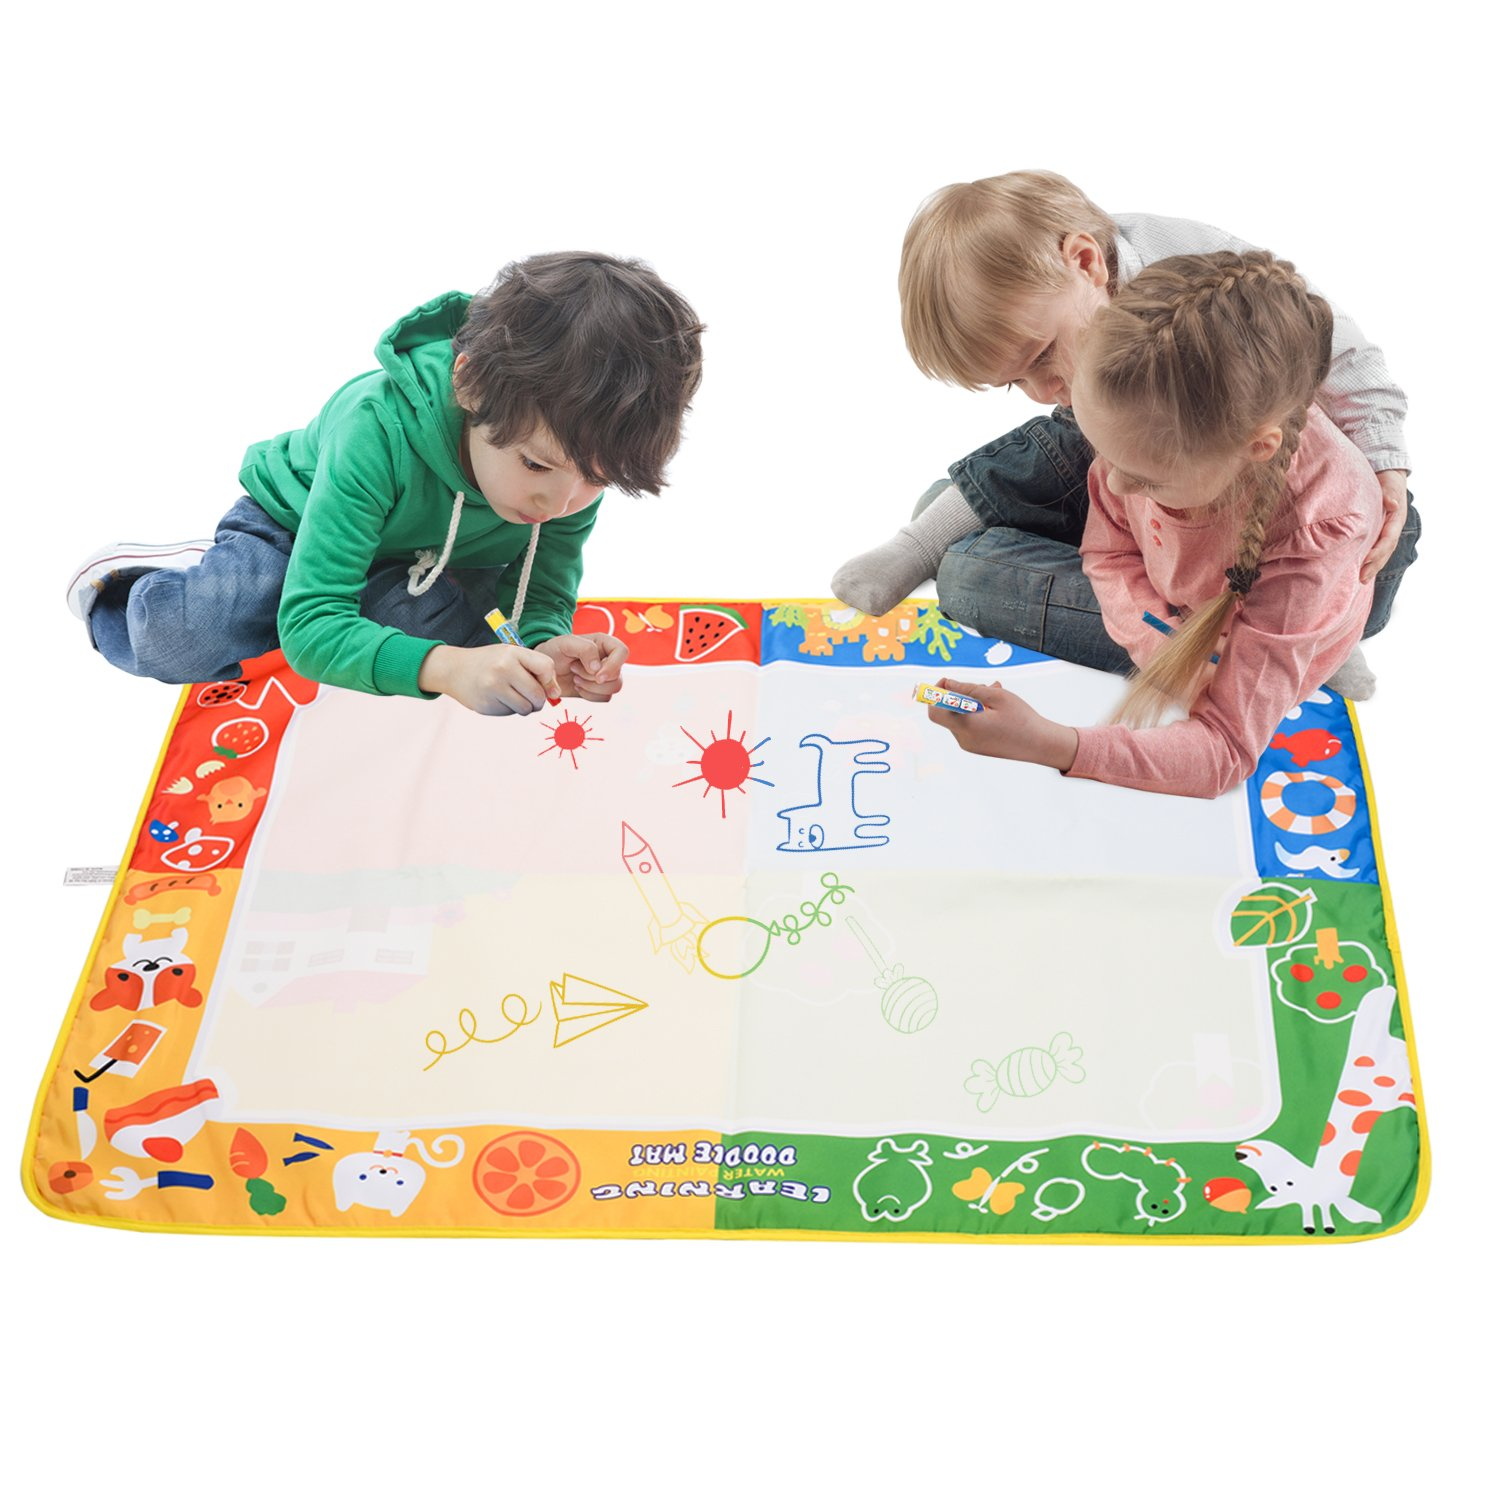 citymama Drawing Mat Doodle Magic mat water Drawing & writing Mat painting board 4 Colors with 3 Magic Drawing Pens and 15 Molds Kids Educational Toy Mat Gift for Children XL Size 40'' x 28'' by citymama (Image #2)